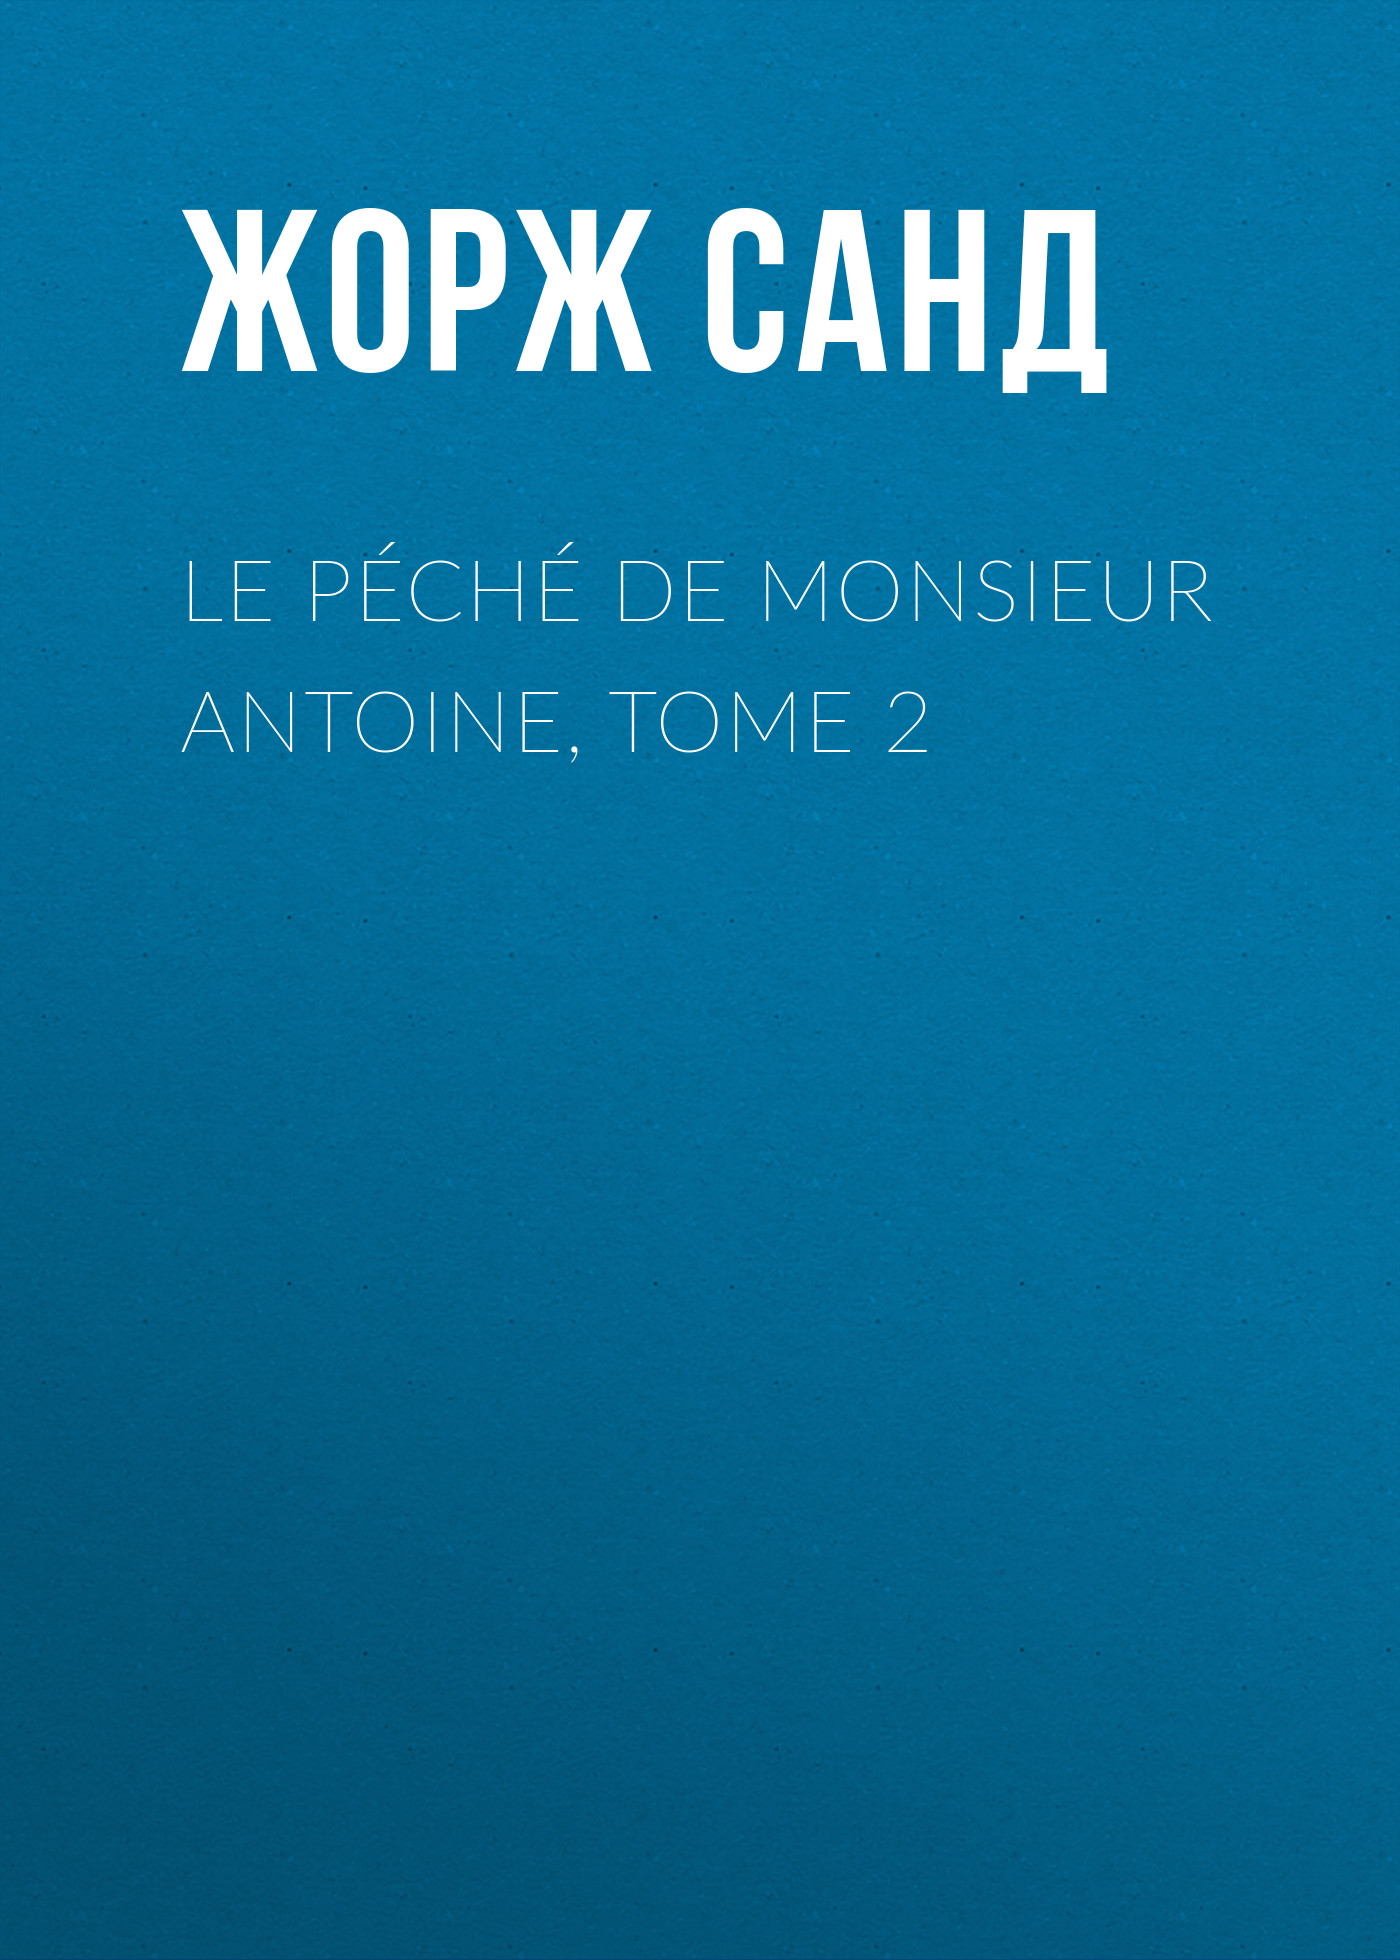 le peche de monsieur antoine tome 2